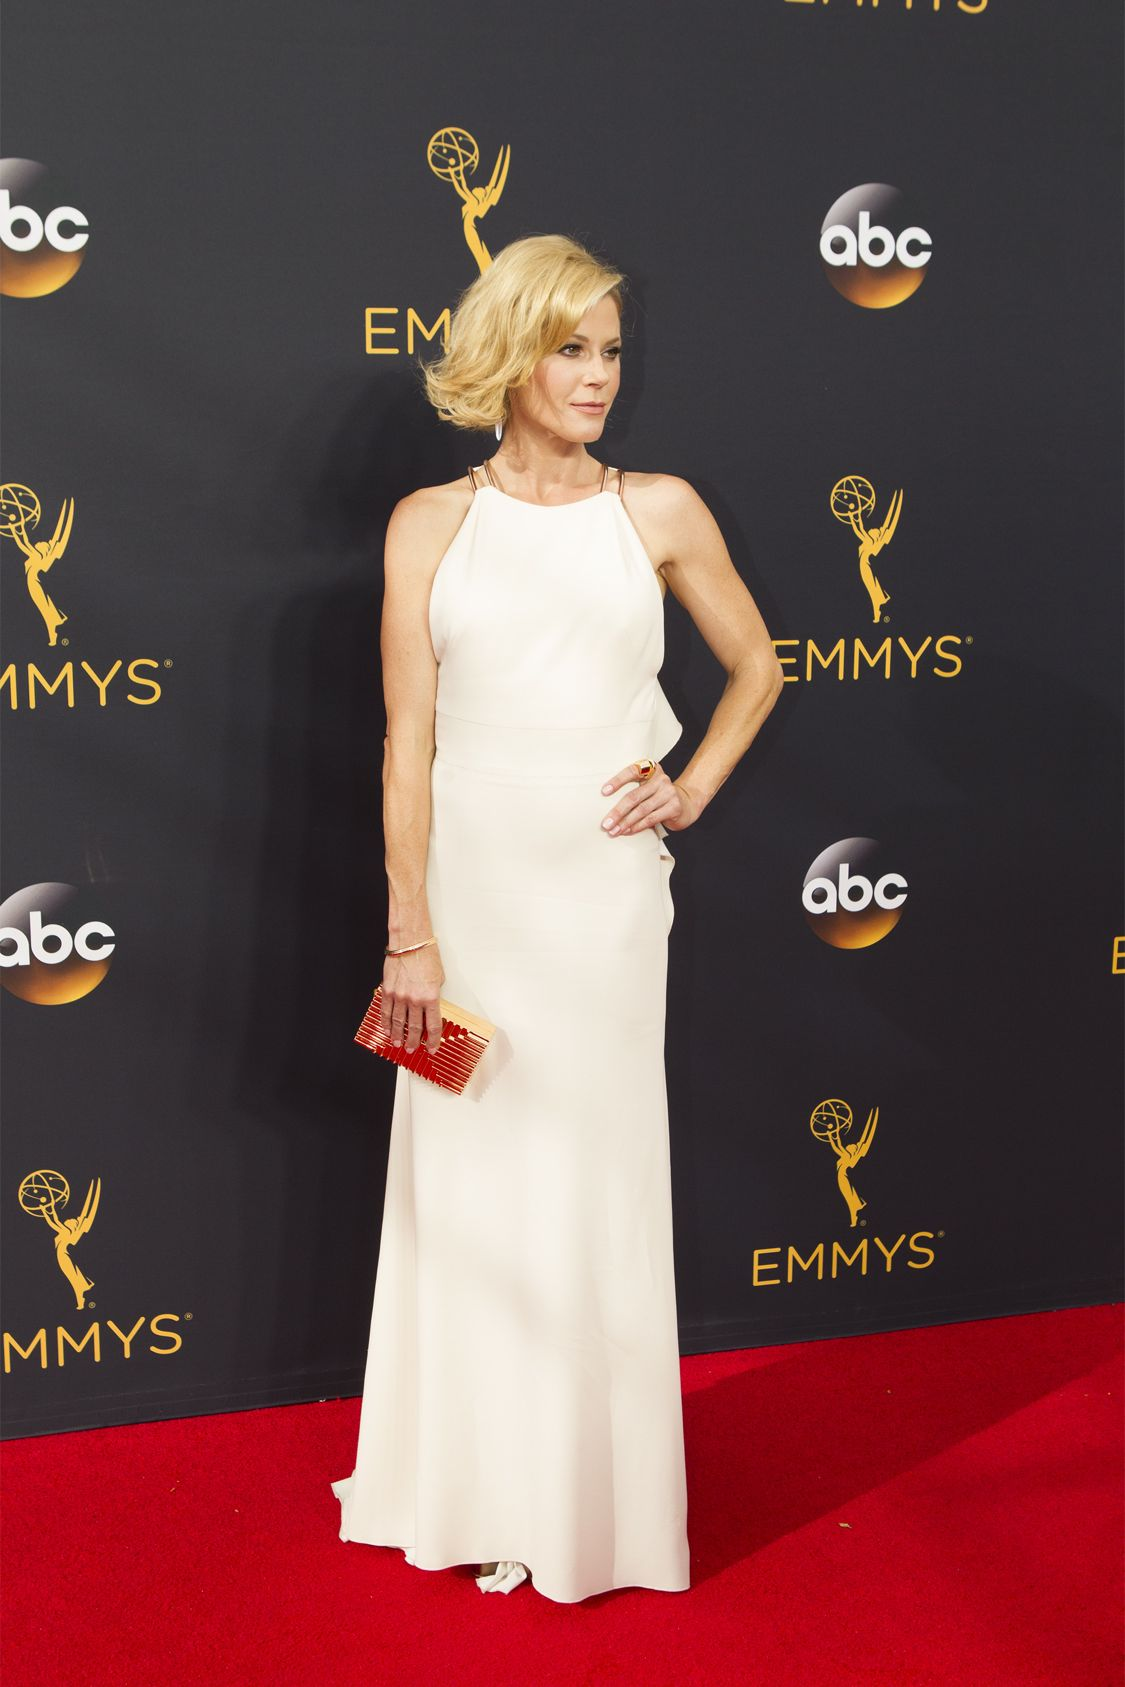 """THE 68TH EMMY(r) AWARDS - """"The 68th Emmy Awards"""" broadcasts live from The Microsoft Theater in Los Angeles, Sunday, September 18 (7:00-11:00 p.m. EDT/4:00-8:00 p.m. PDT), on ABC and is hosted by Jimmy Kimmel. (ABC/Rick Rowell) JULIE BOWEN"""